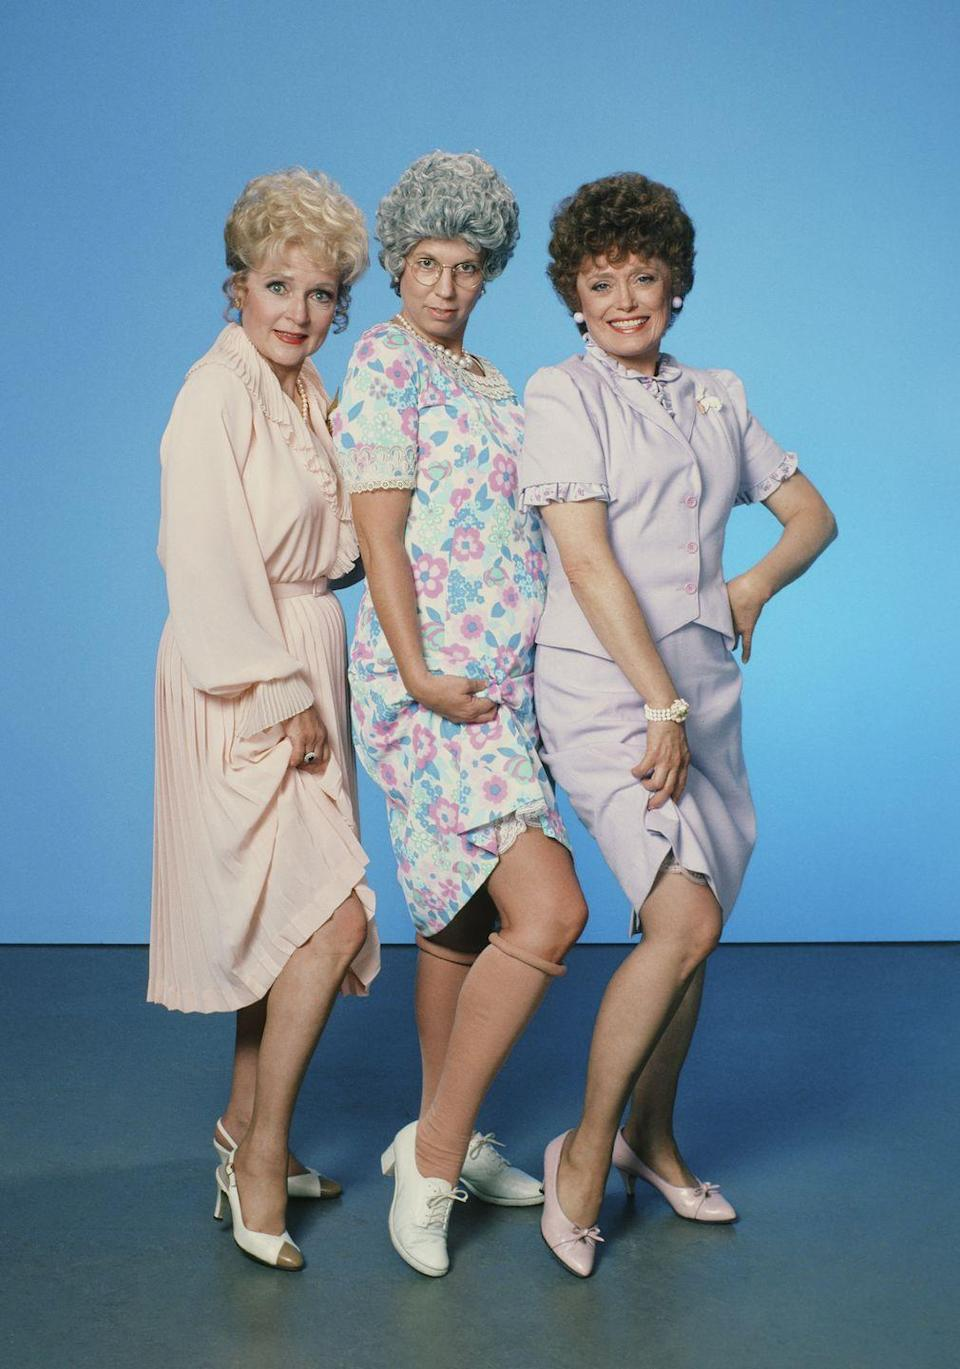 <p>For about a year, White had a recurring role on the series <em>Mama's Family</em> along with her future <em>Golden Girls</em> co-star Rue McClanahan. White played Ellen Harper Jackson, who basically originated from her character on <em>The Carol Burnett Show</em>. </p>